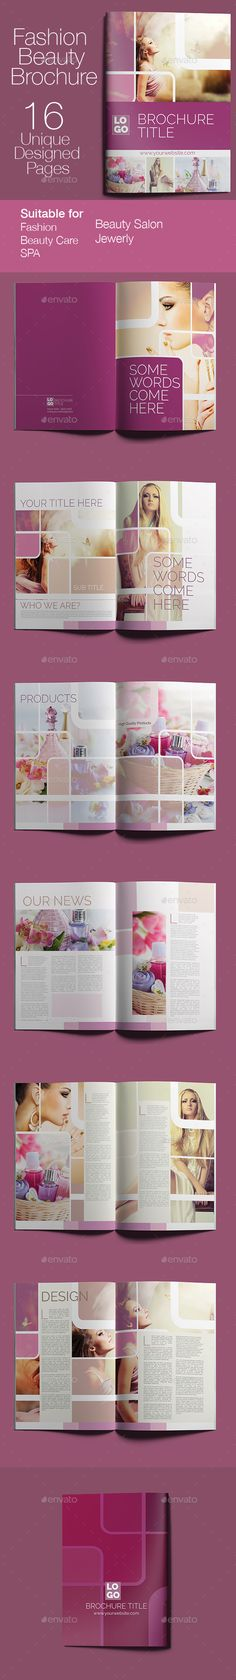 Fashion & Beauty Brochure Template Vector EPS, InDesign INDD, AI Illustrator